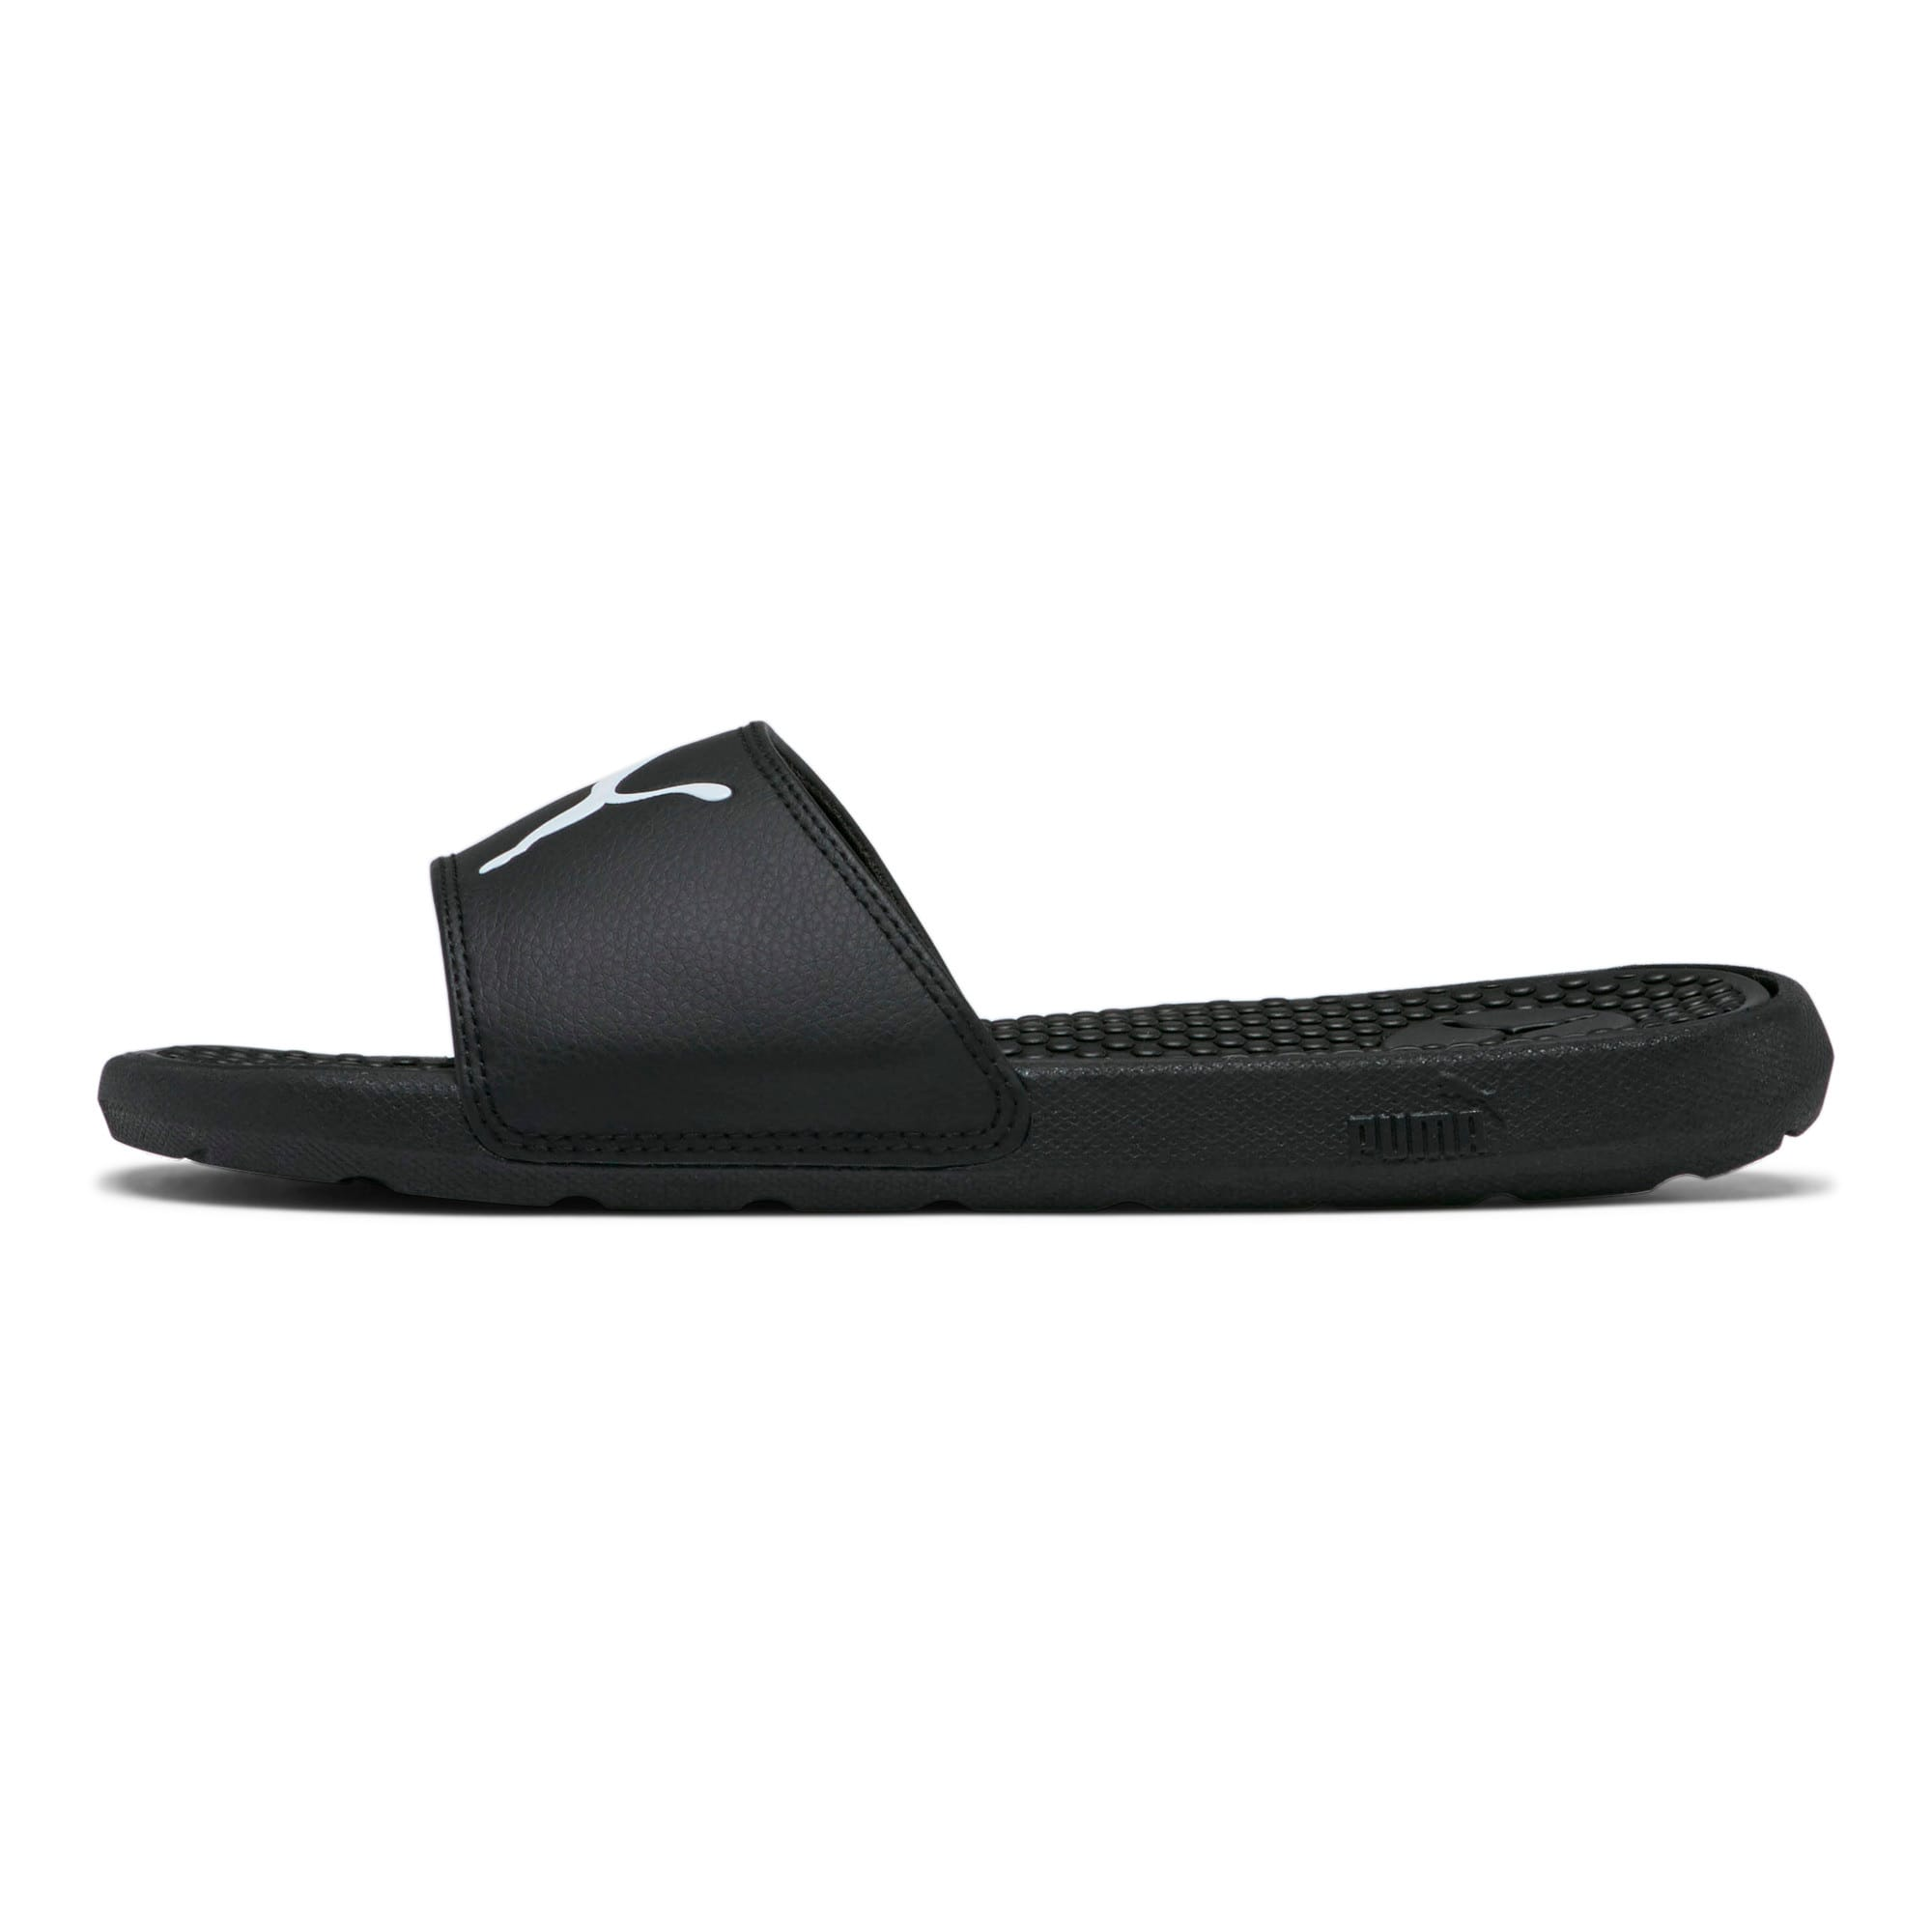 Thumbnail 1 of Cool Cat Sport Women's Slides, Puma Black-Puma White, medium